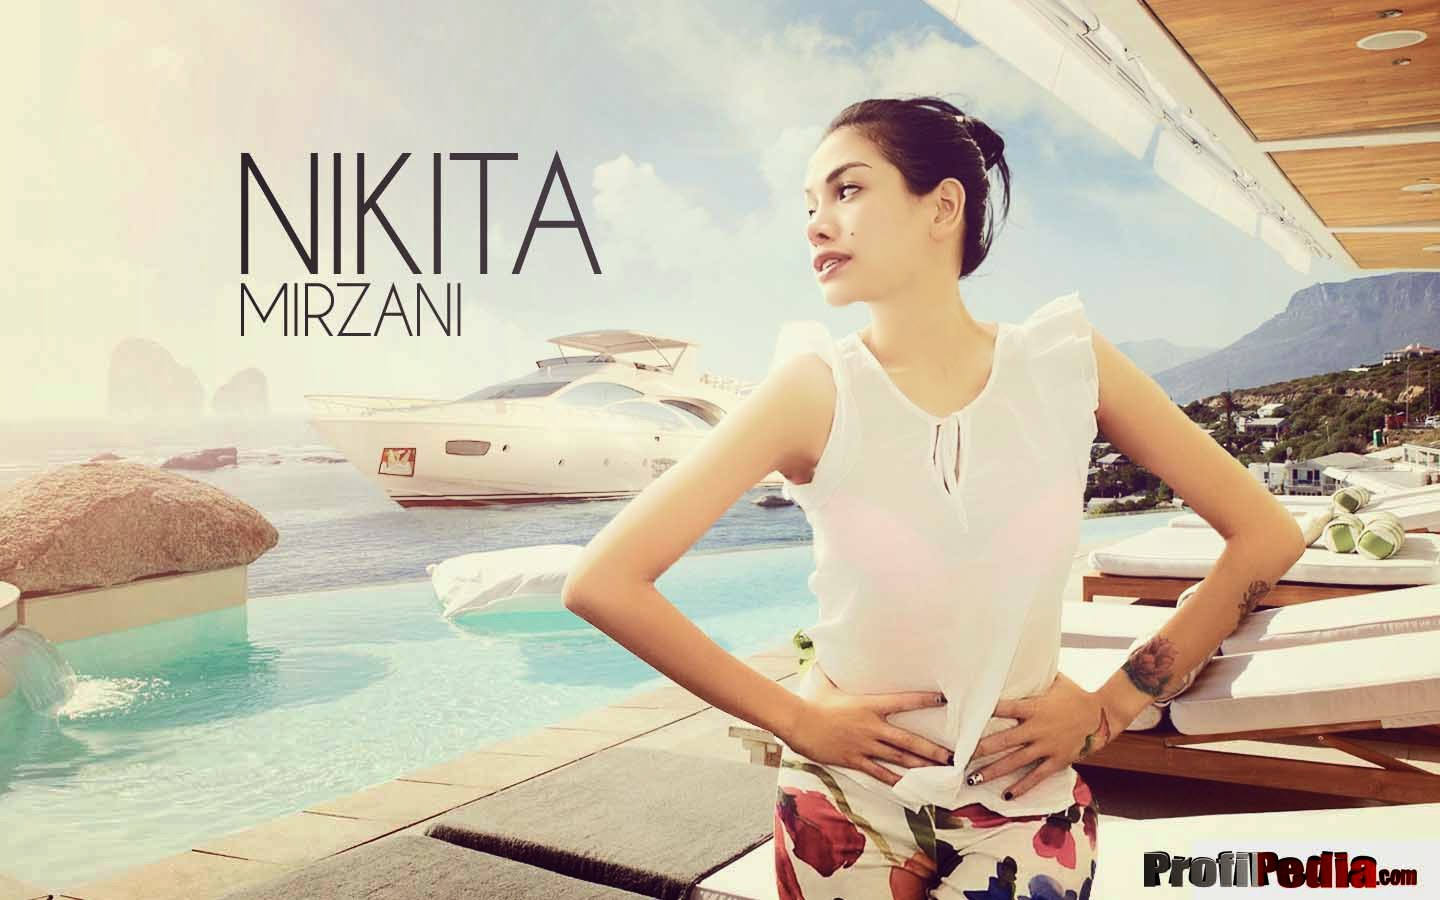 Nikita Mirzani wallpaper beach boat